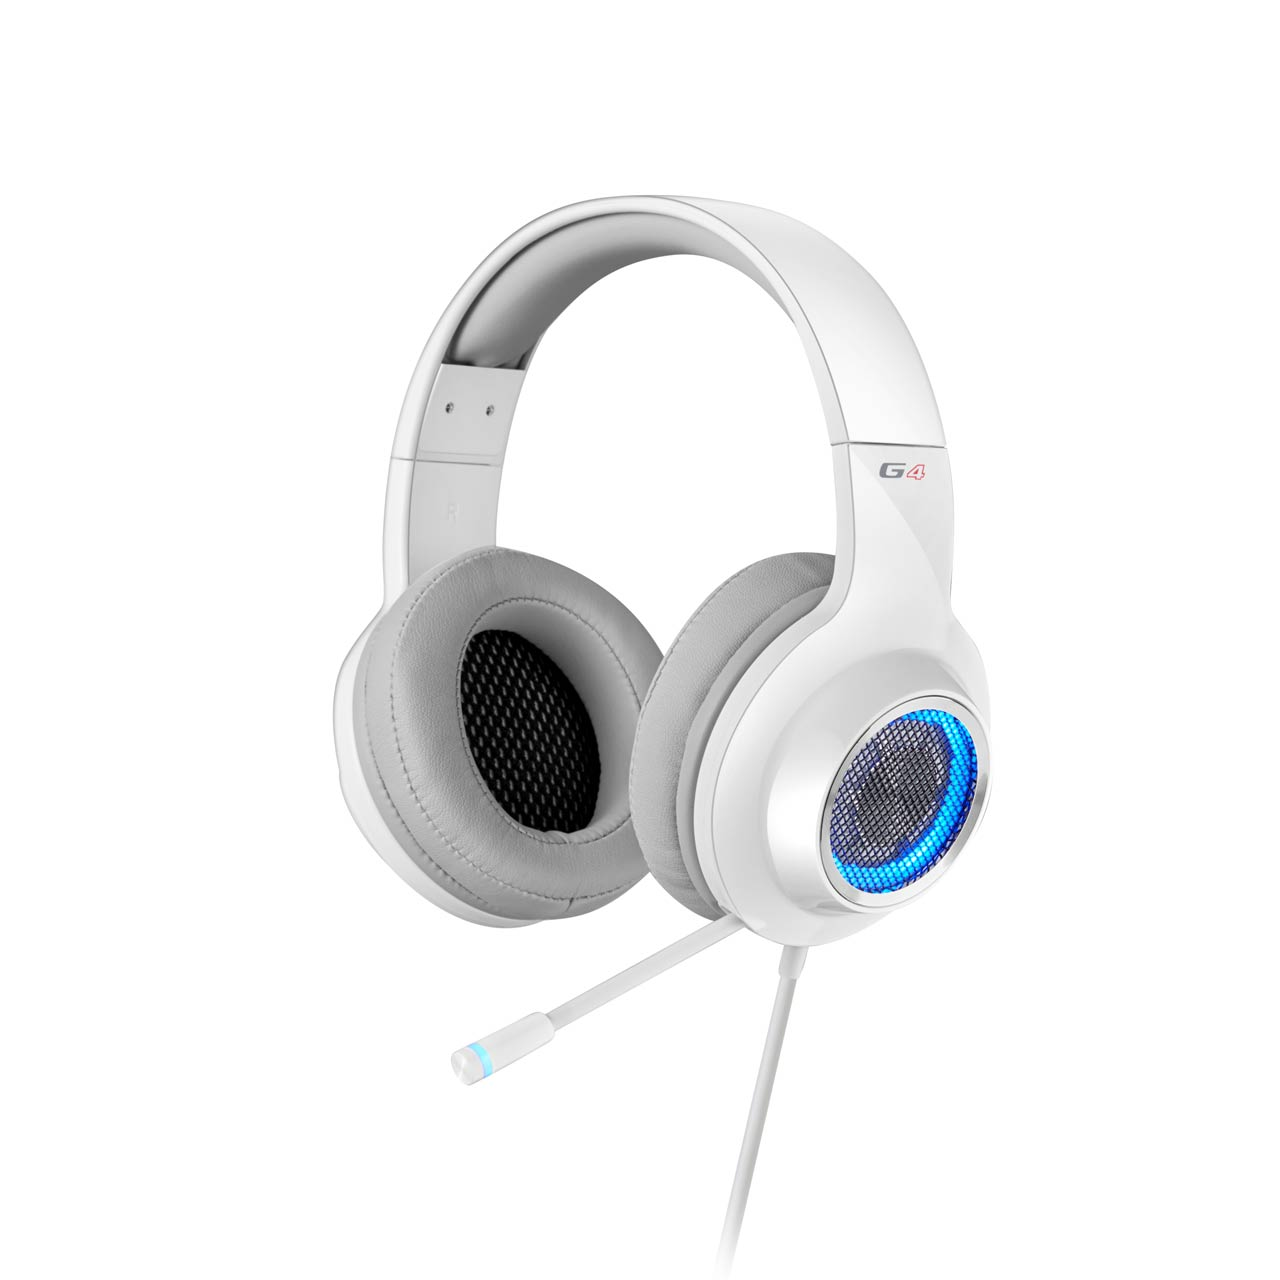 Edifier, V4, (G4), 7.1, Virtual, Surround, Sound, USB, Gaming, Headset, White, -, V7.1, Surround, Sound/, Retractable, Mic/LED, Lights, Me,